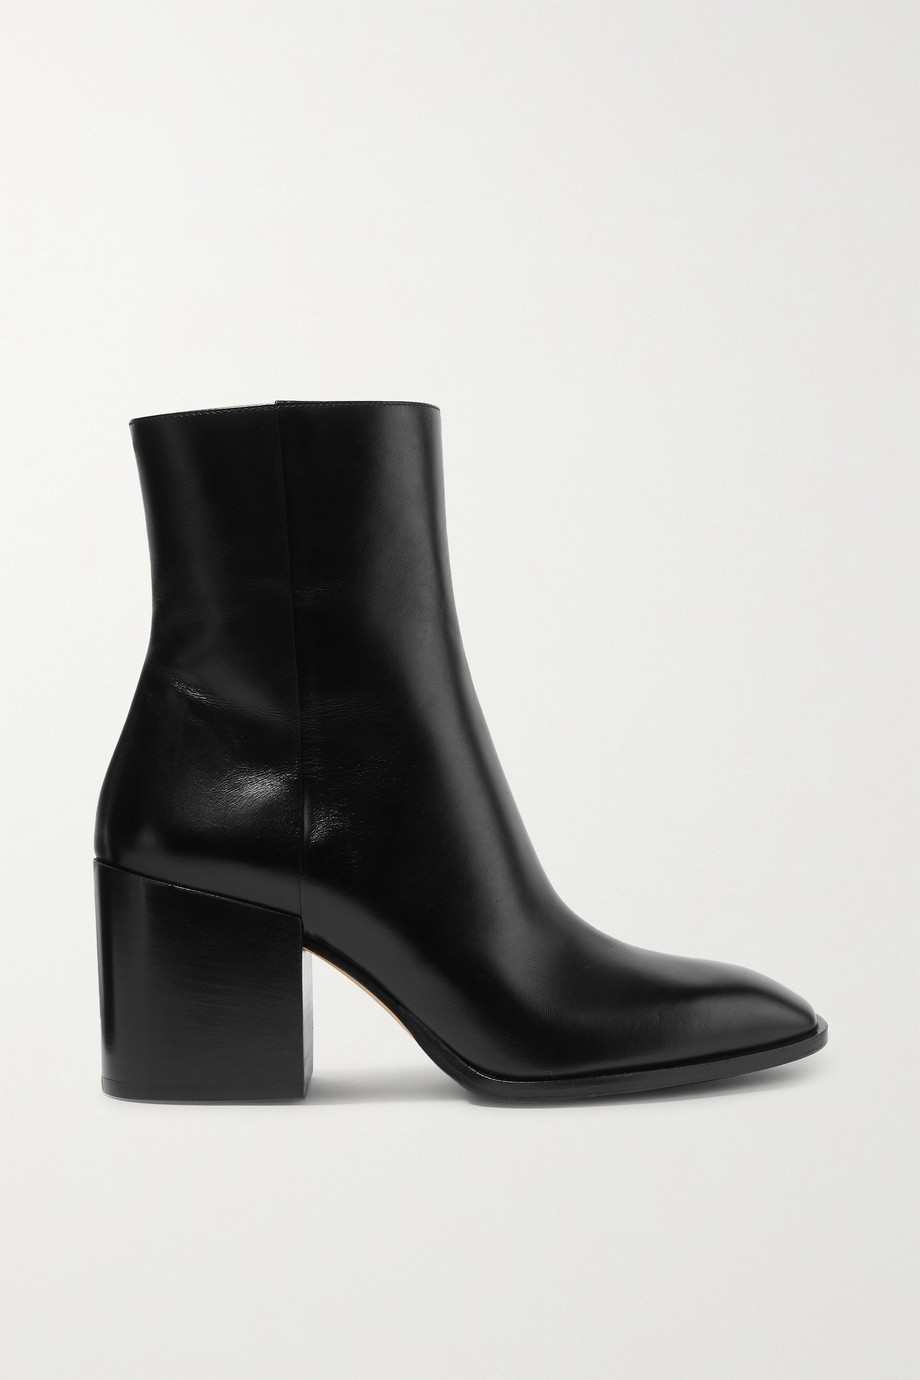 aeyde Leandra leather ankle boots